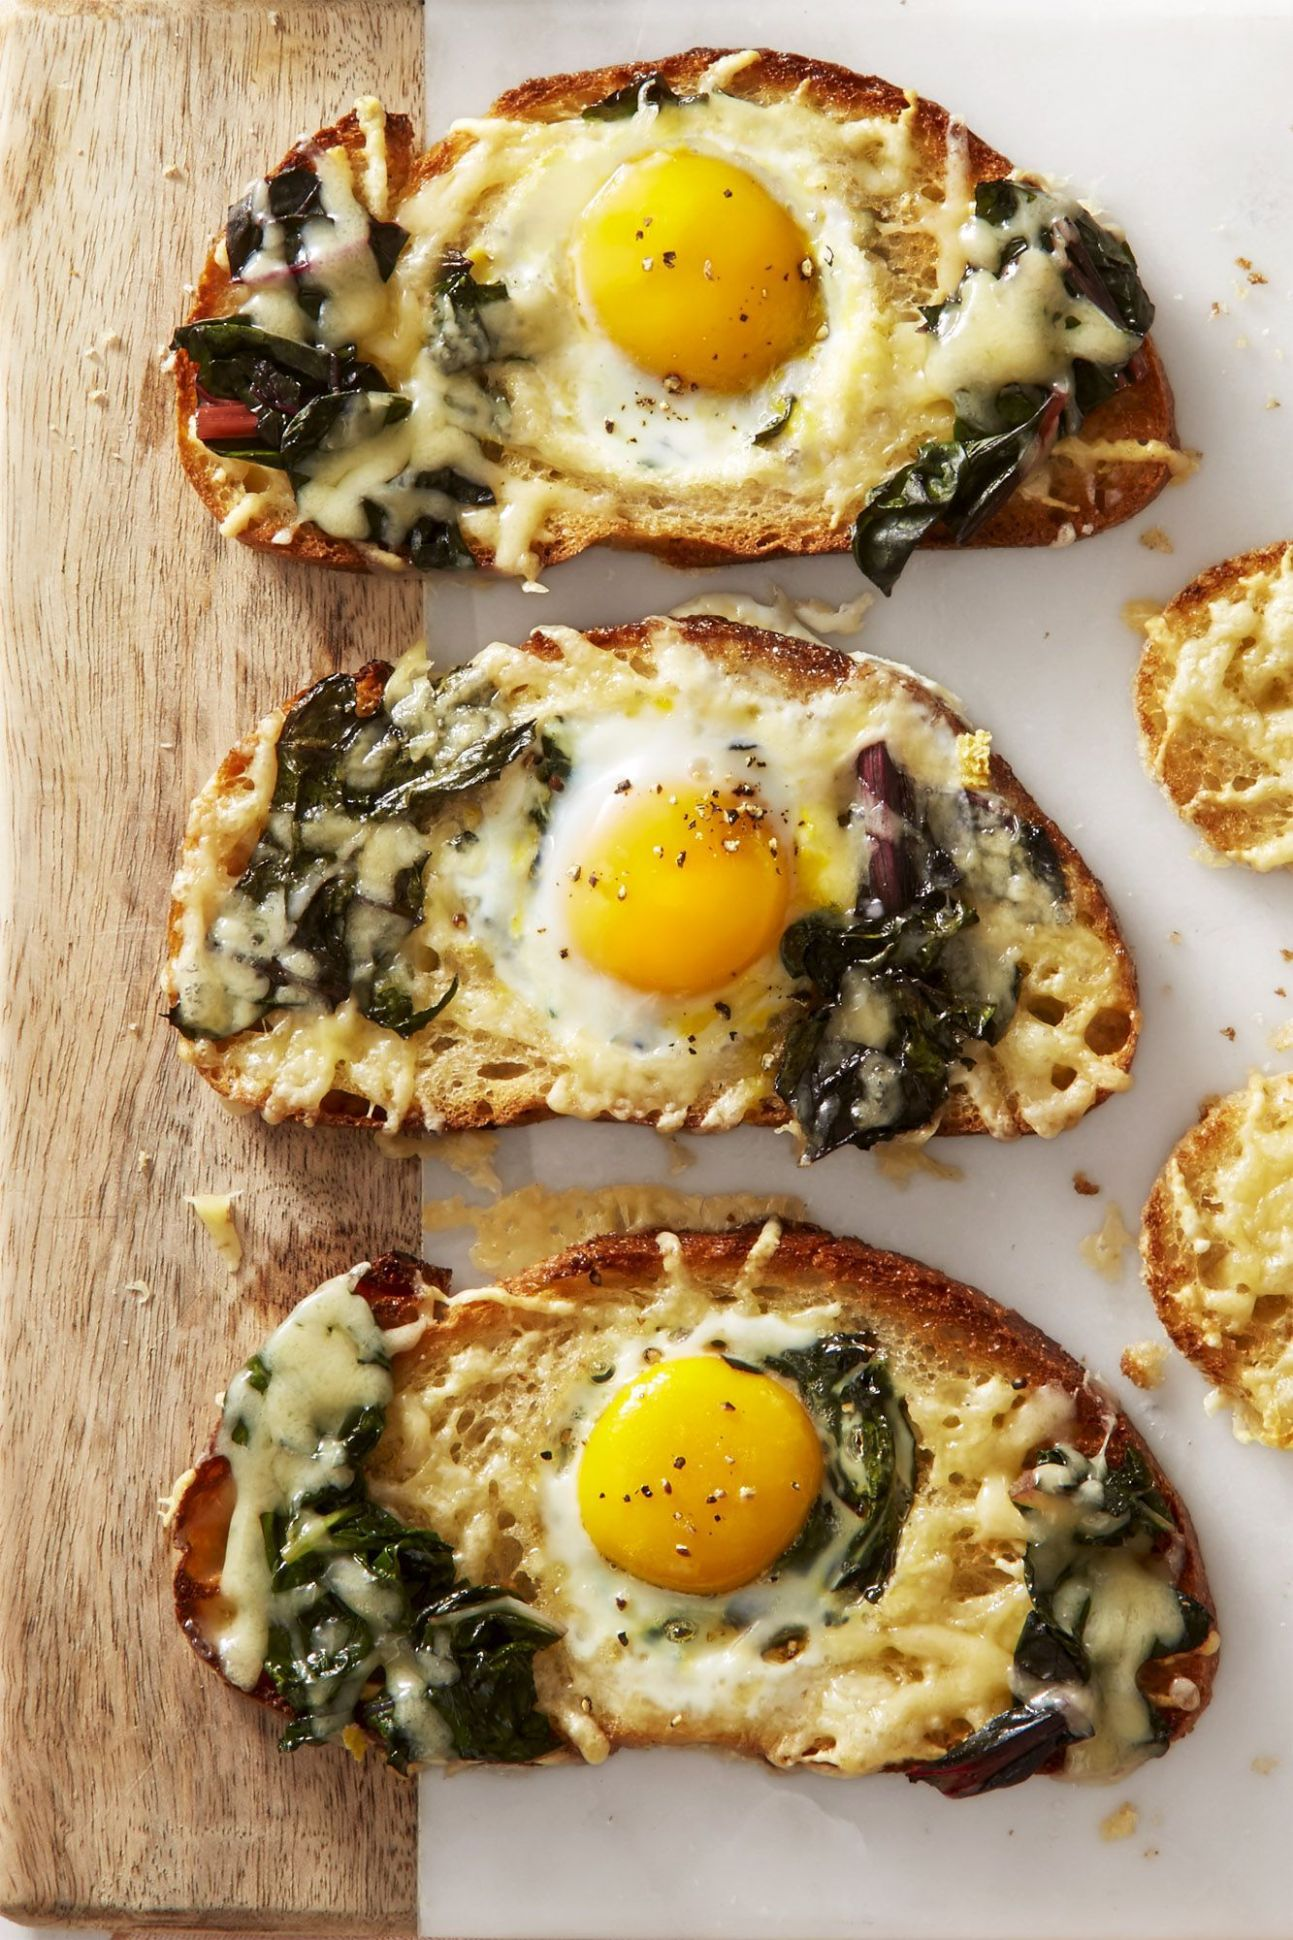 8+ Easy Egg Recipes - Ways to Cook Eggs for Breakfast - Egg Recipes Easy